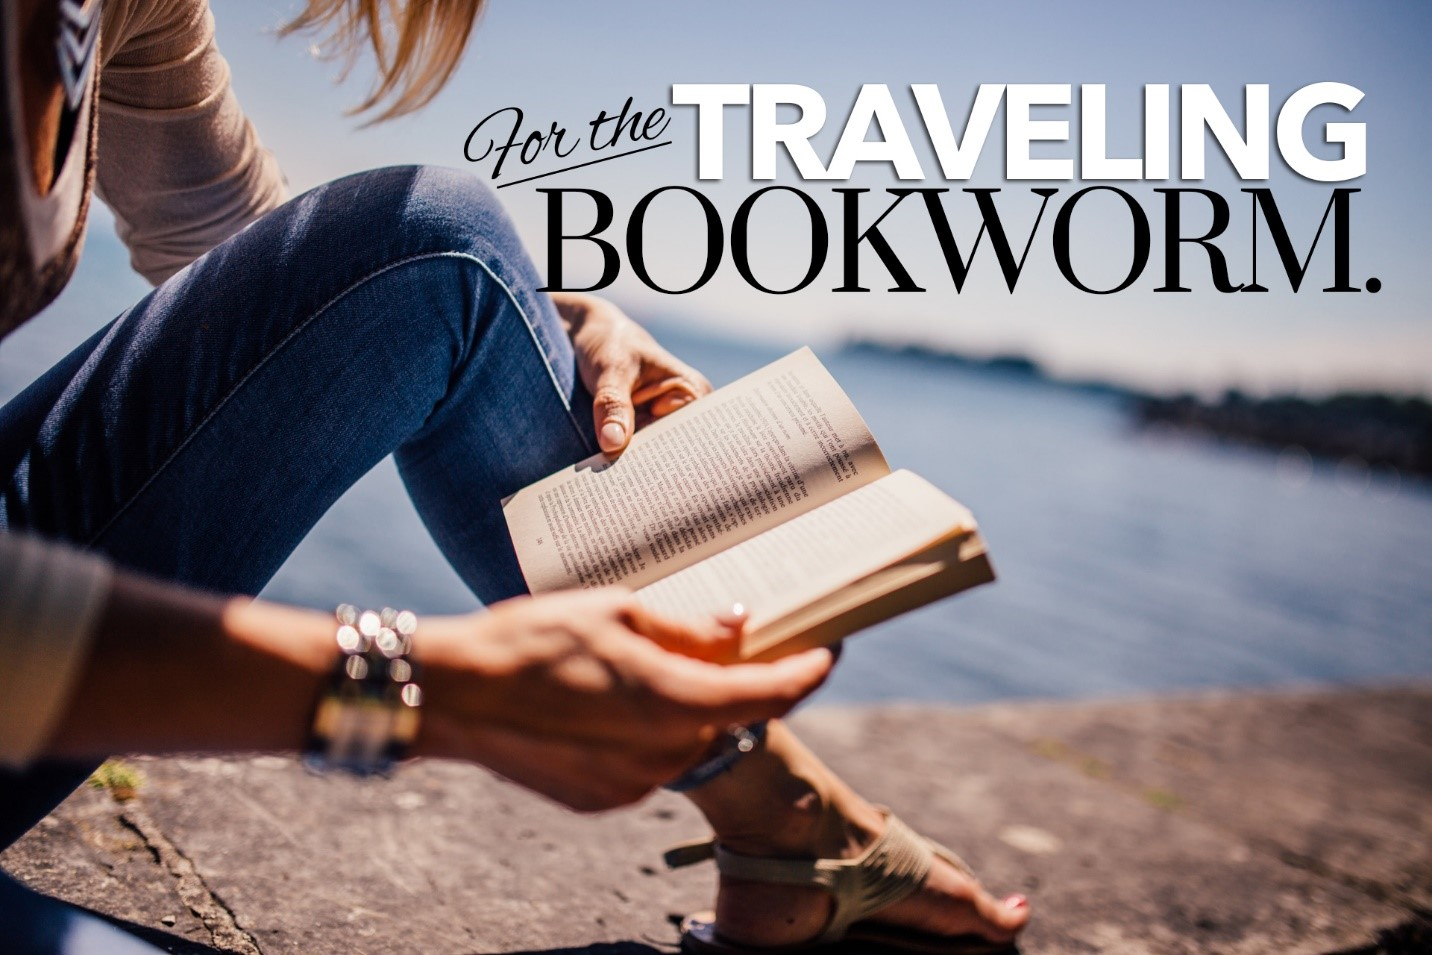 For The Traveling Bookworm